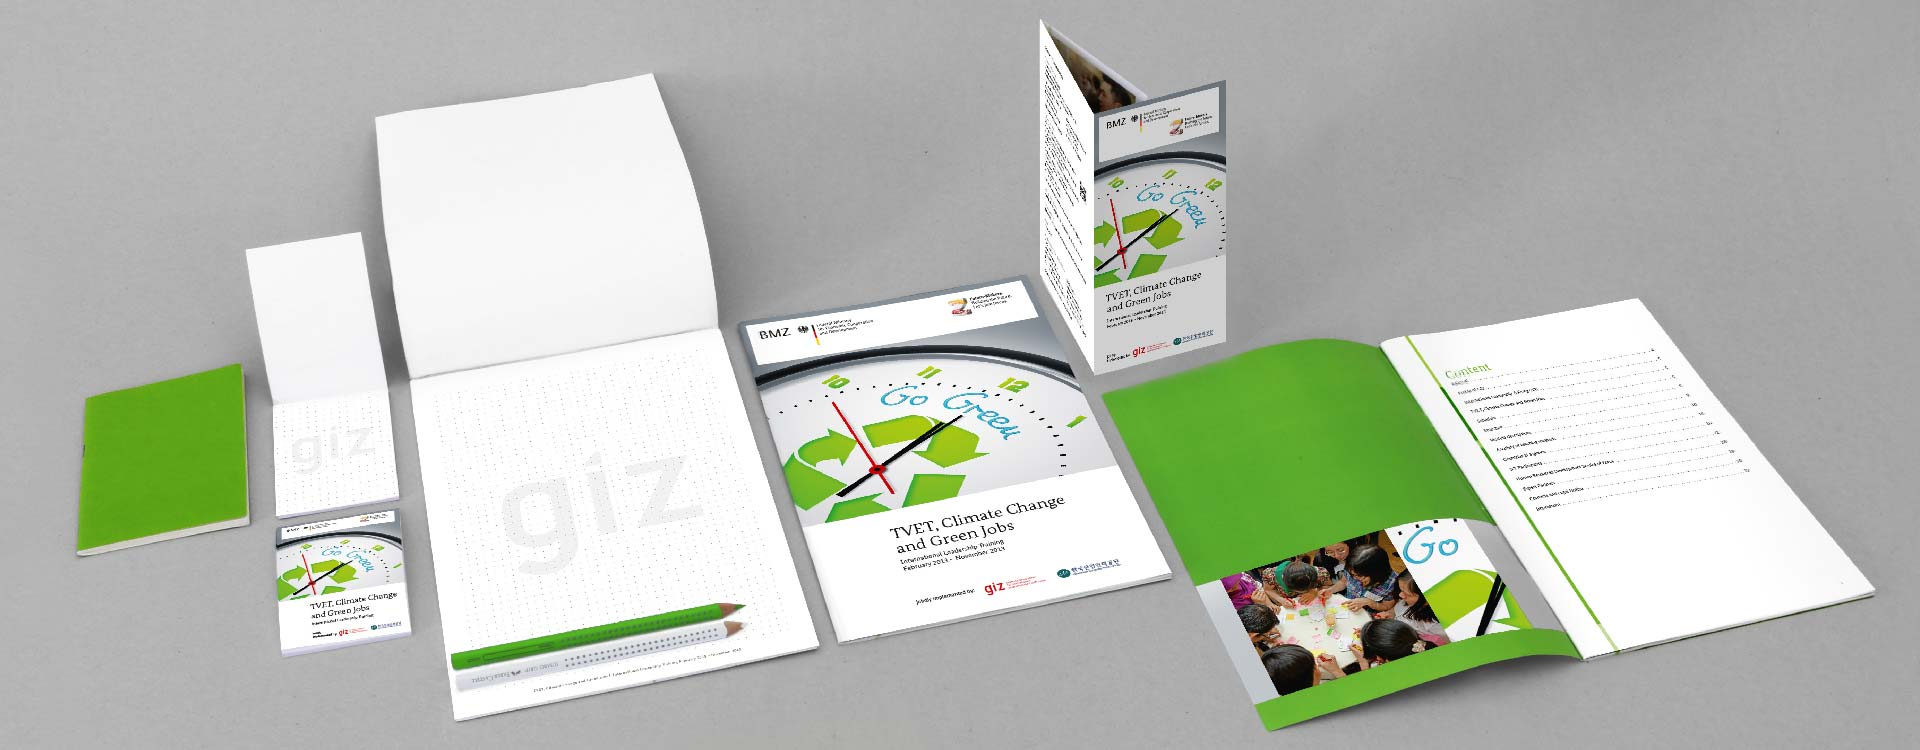 Printed matter for the project of the GIZ Magdeburg Technical Vocational Education and Training, Climate Change and Green Jobs; Design: Kattrin Richter | Graphic Design Studio